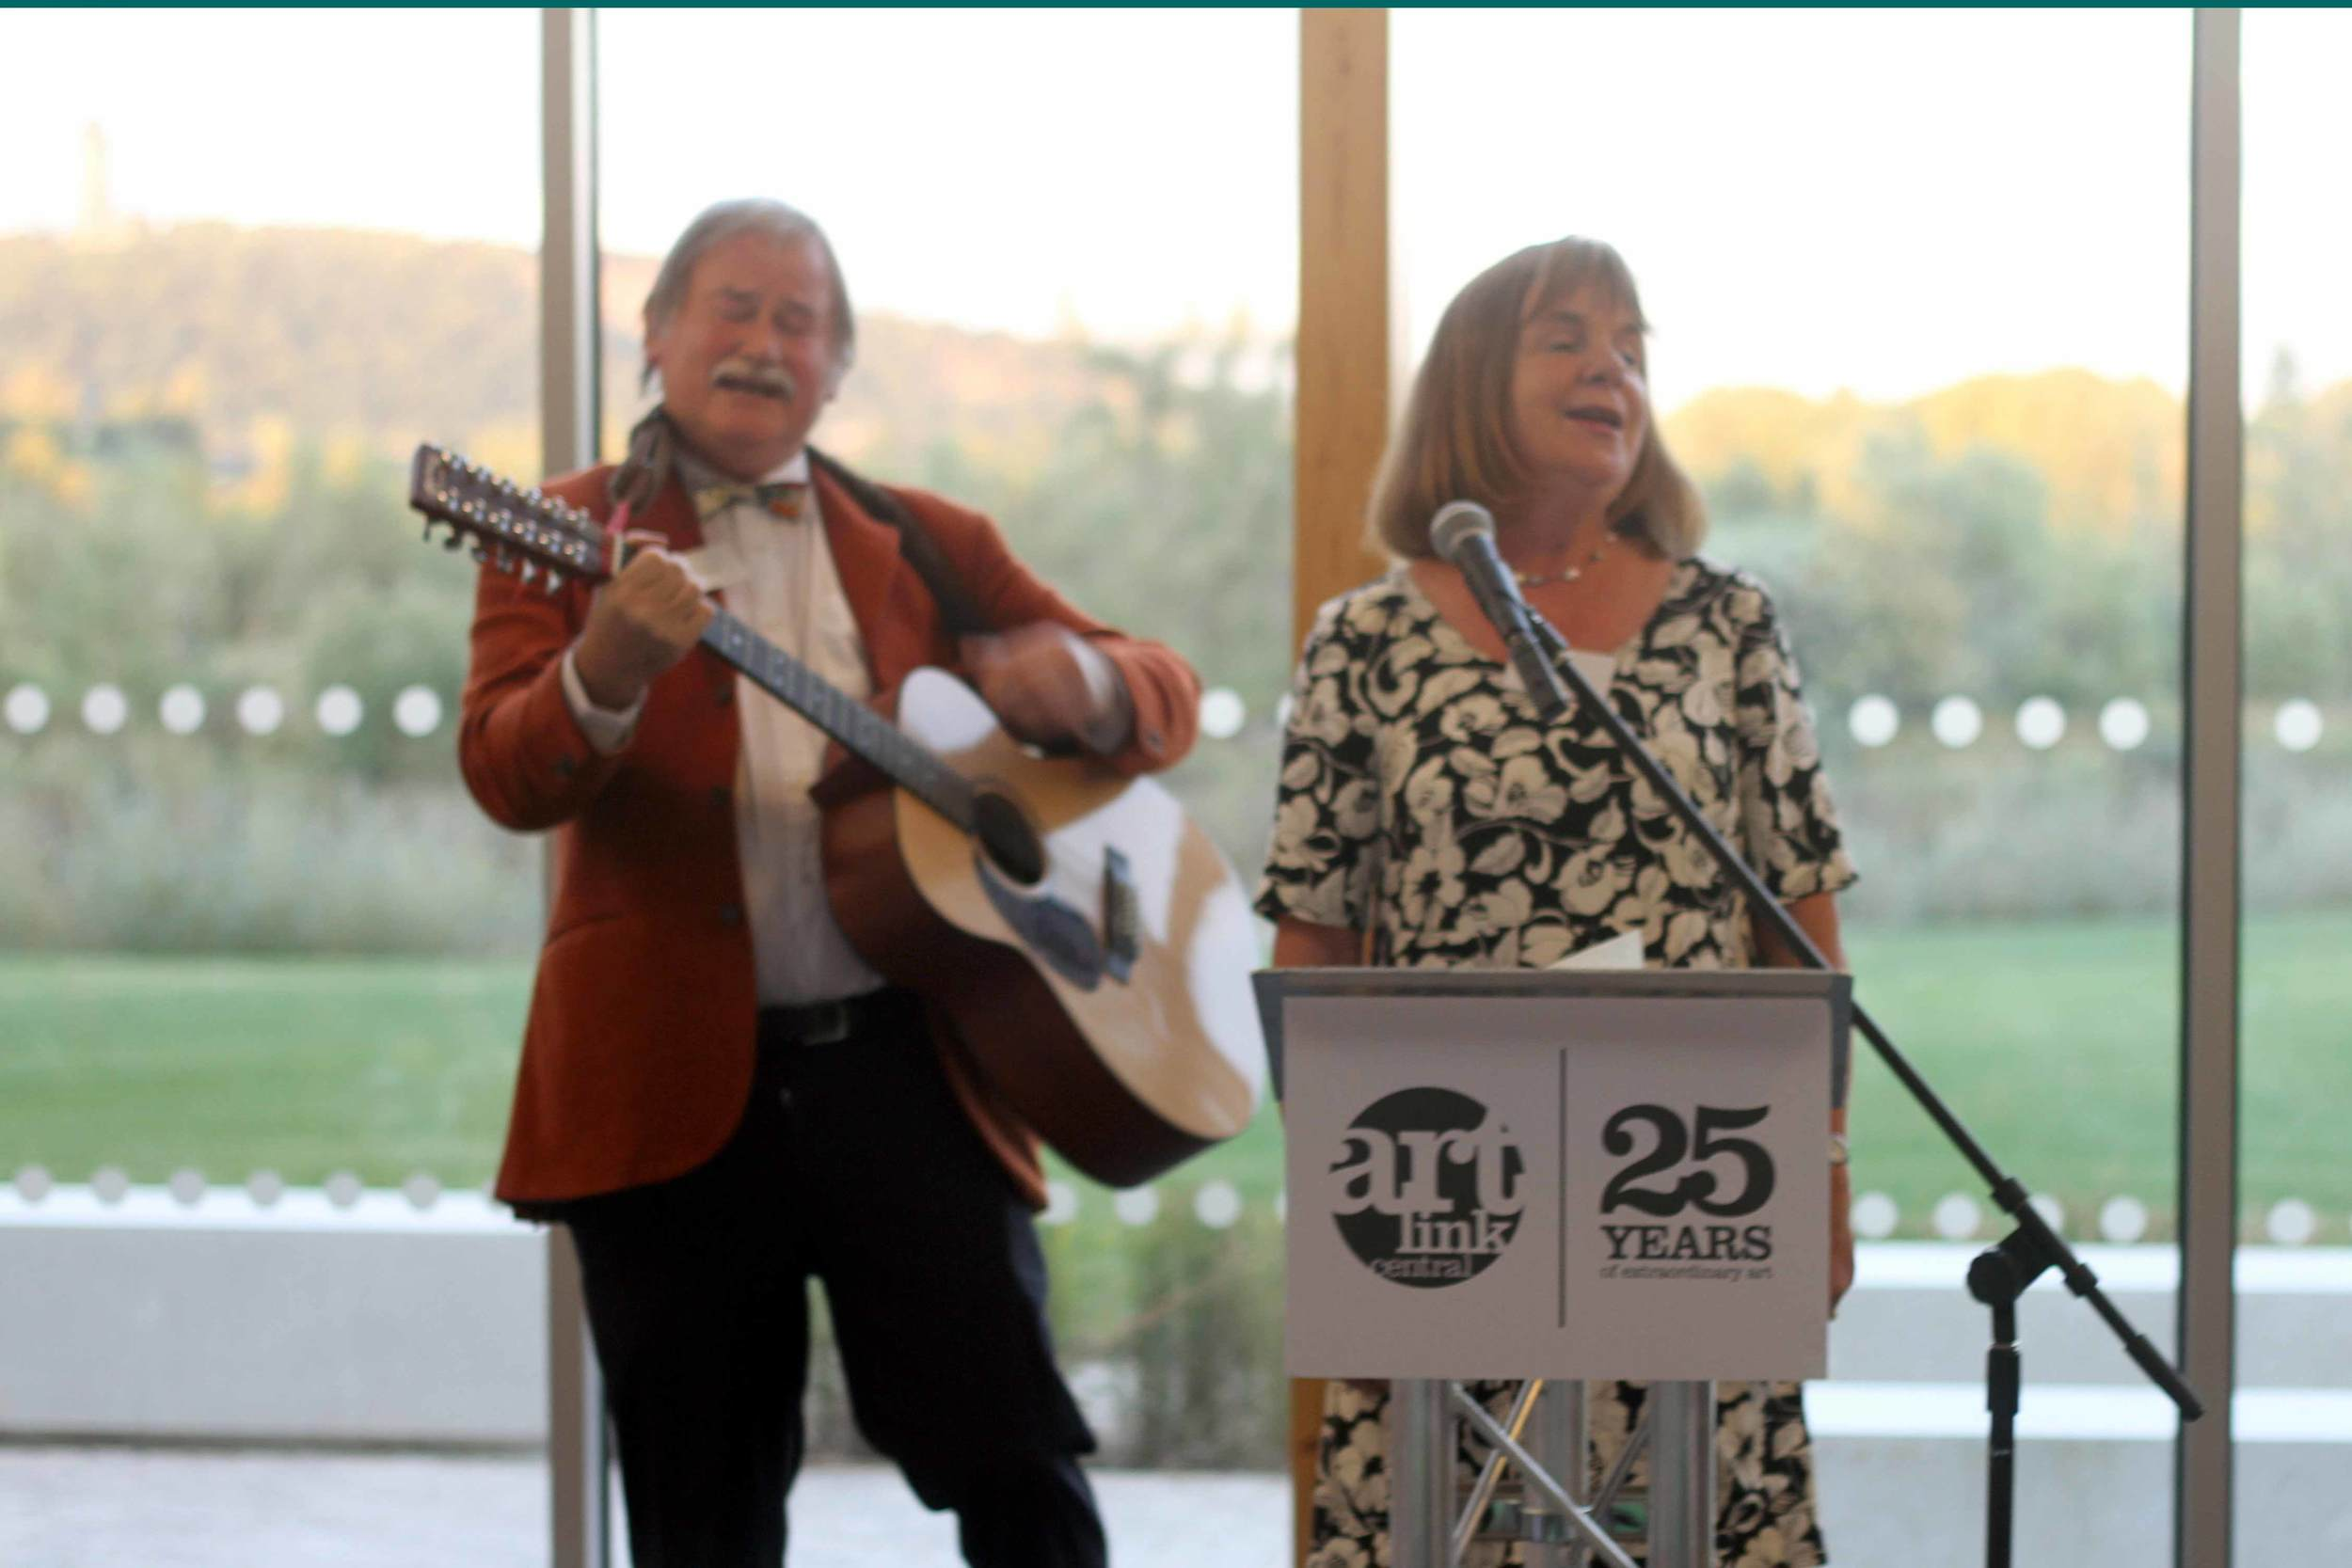 Malcolm Donaldson accompanies our Patron, Julia Donaldson in her rendition of 'Queen of the Volunteers' celebrating twenty years of dedication by our own Carol Seymour